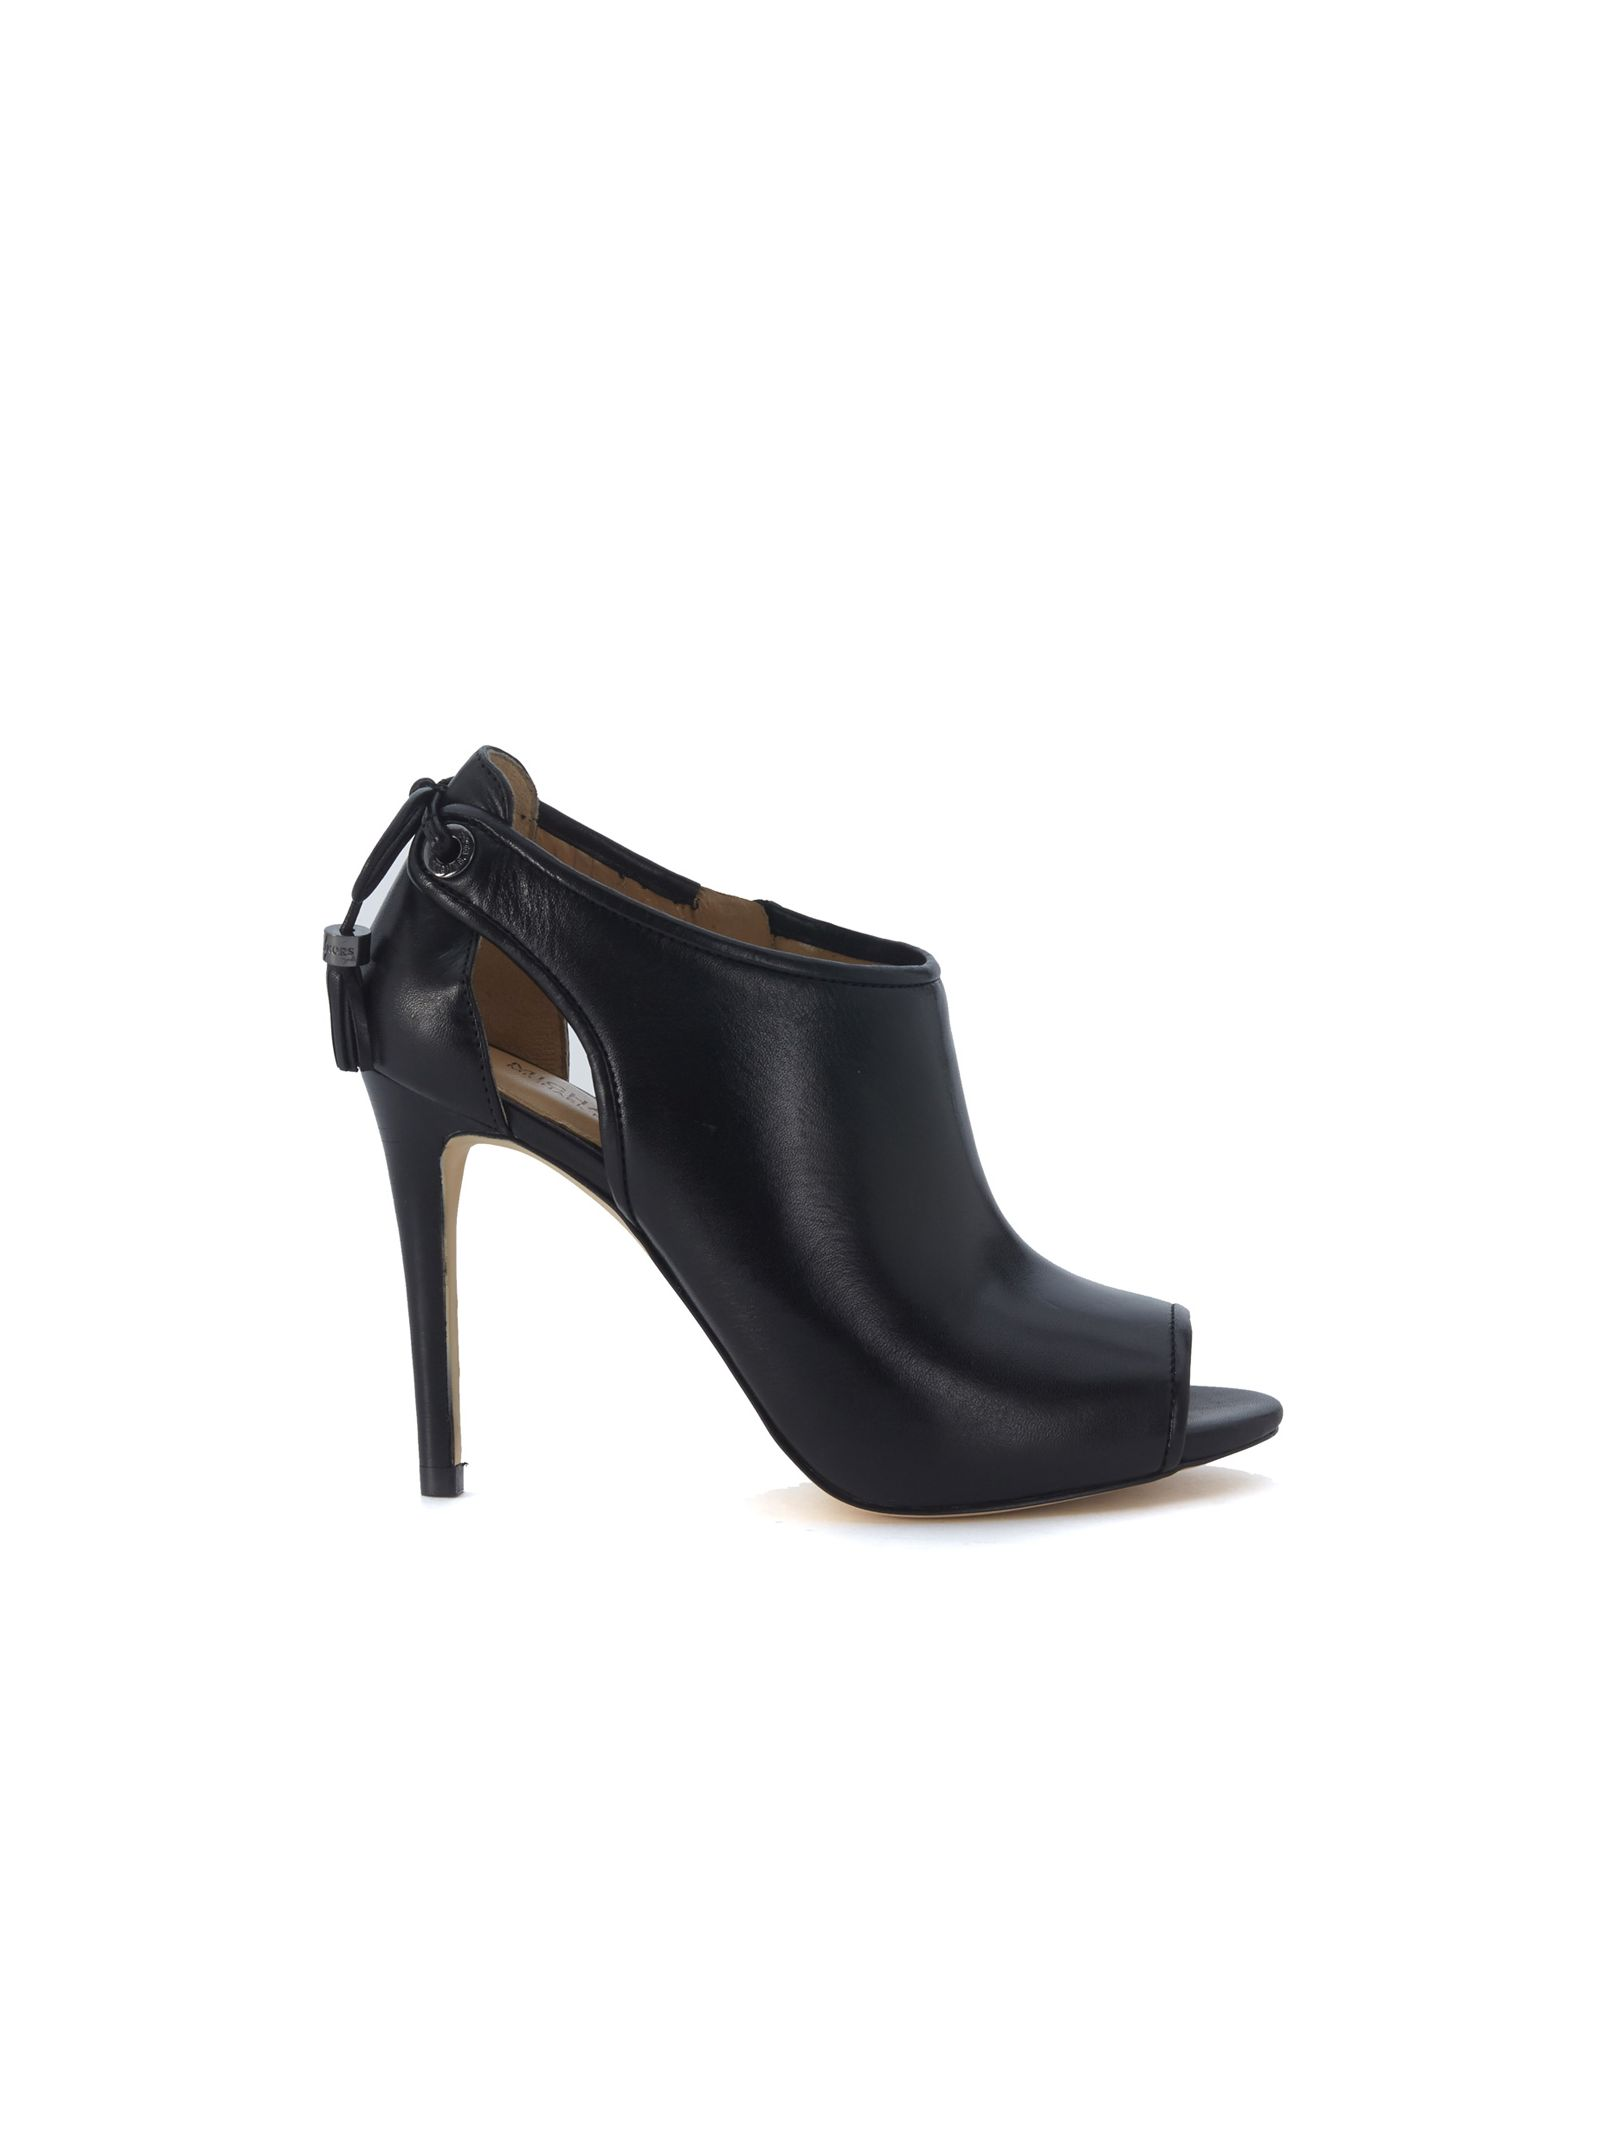 michael kors female michael kors jennings ankle boots in black leather with laces and nappas